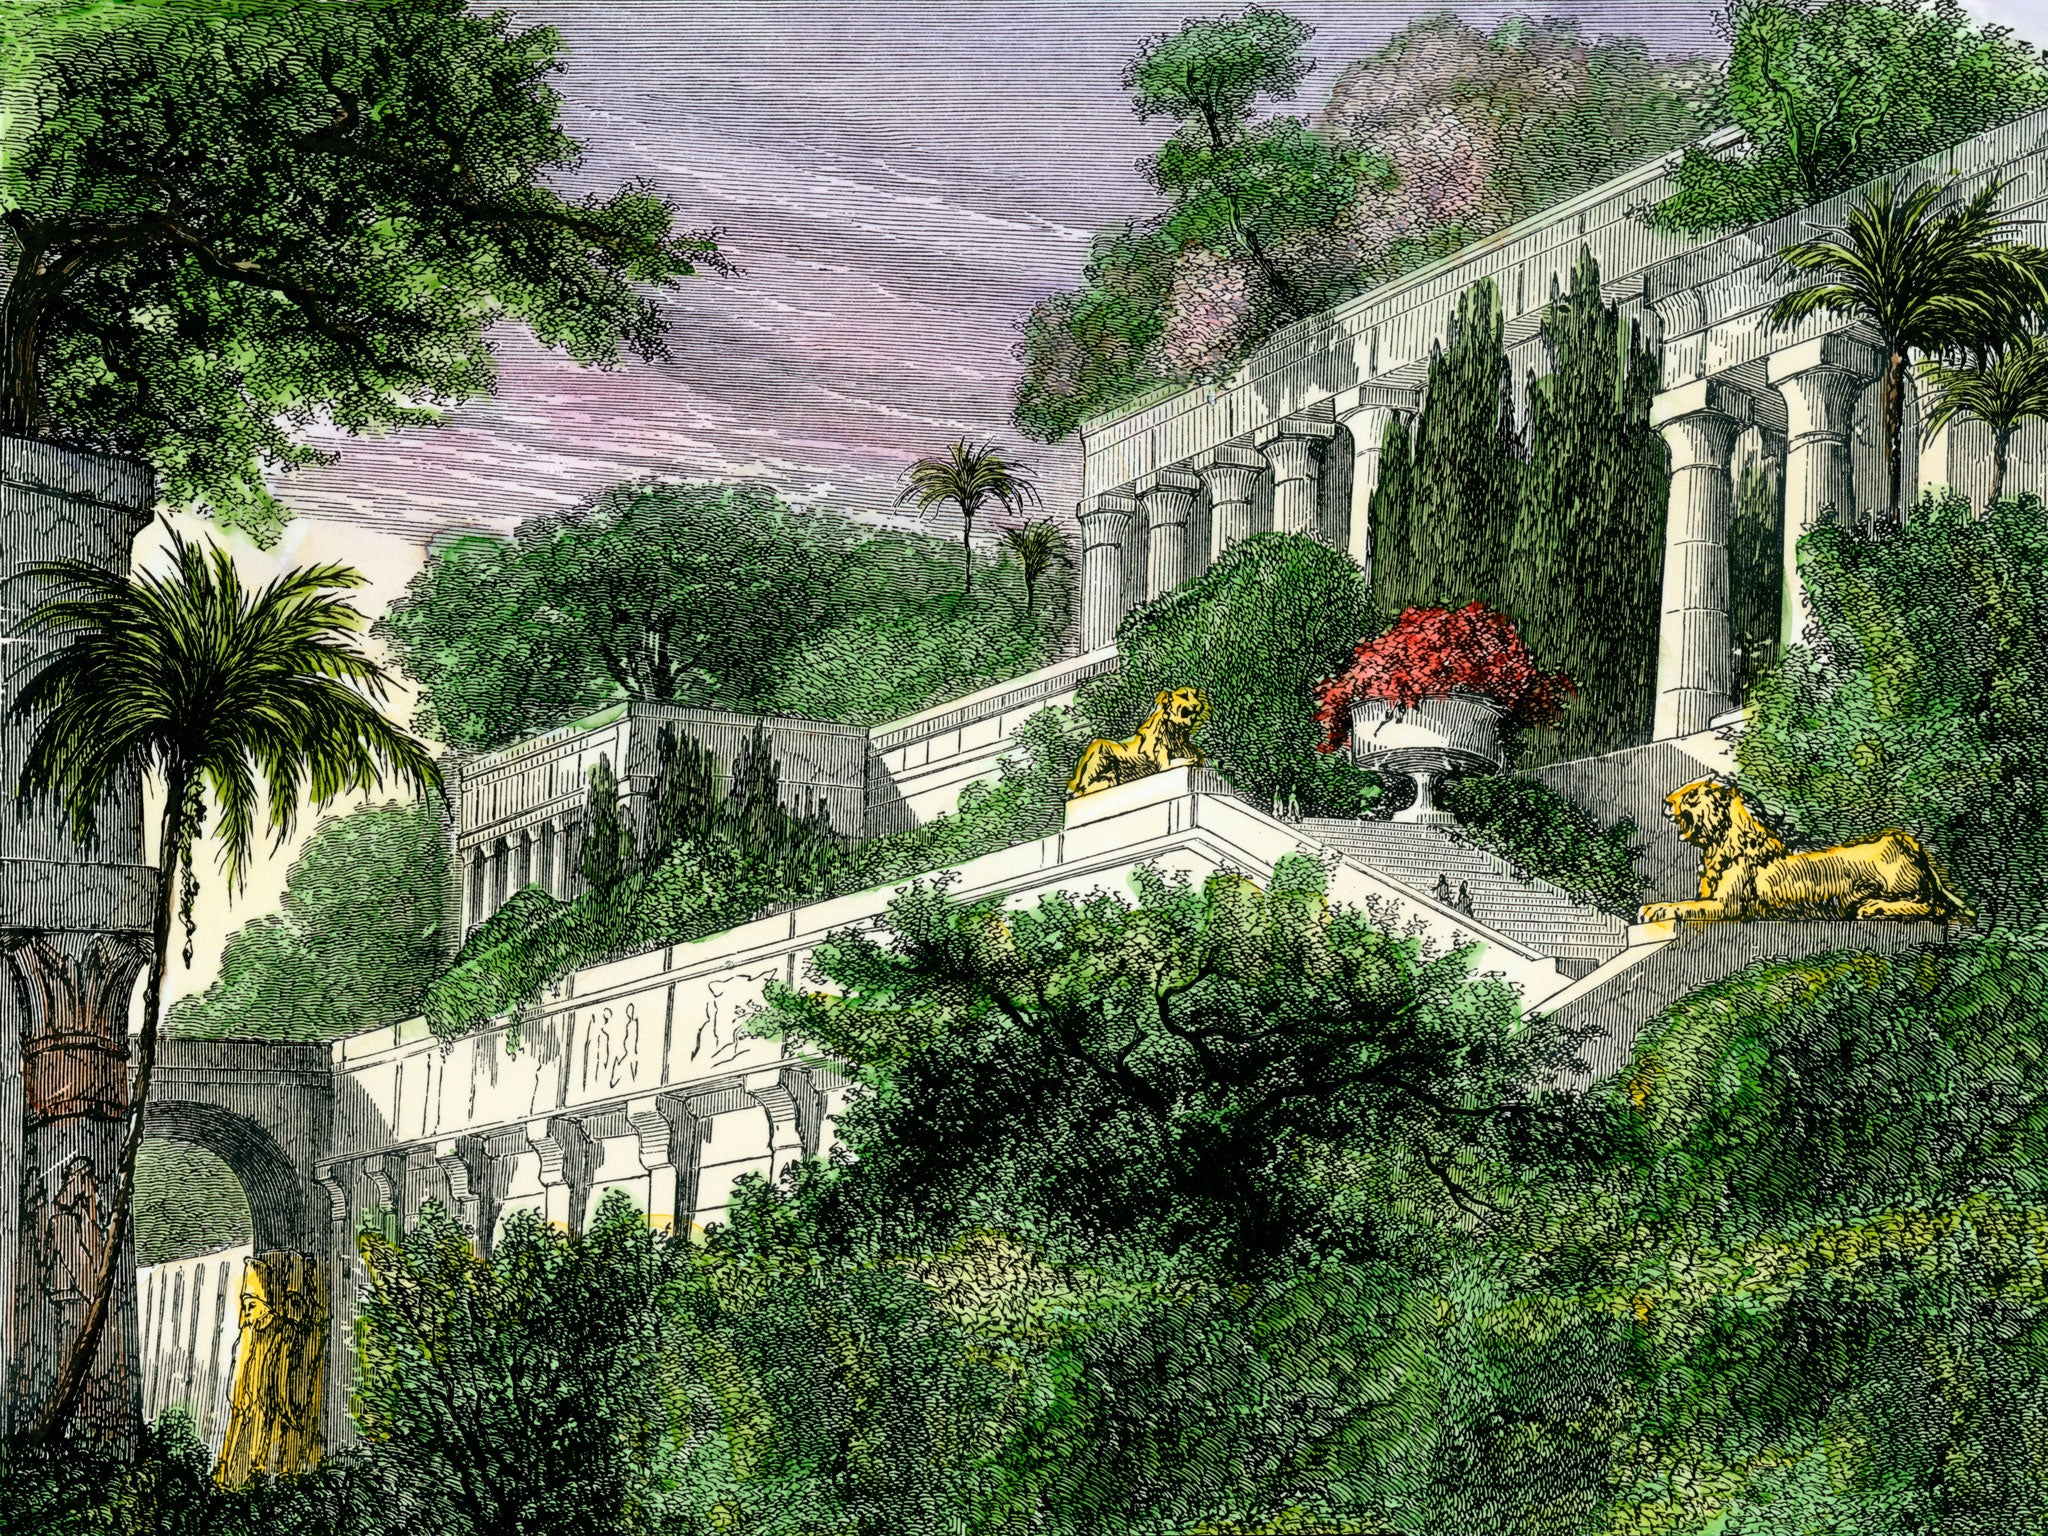 The Biggest Wonder About The Hanging Gardens Of Babylon